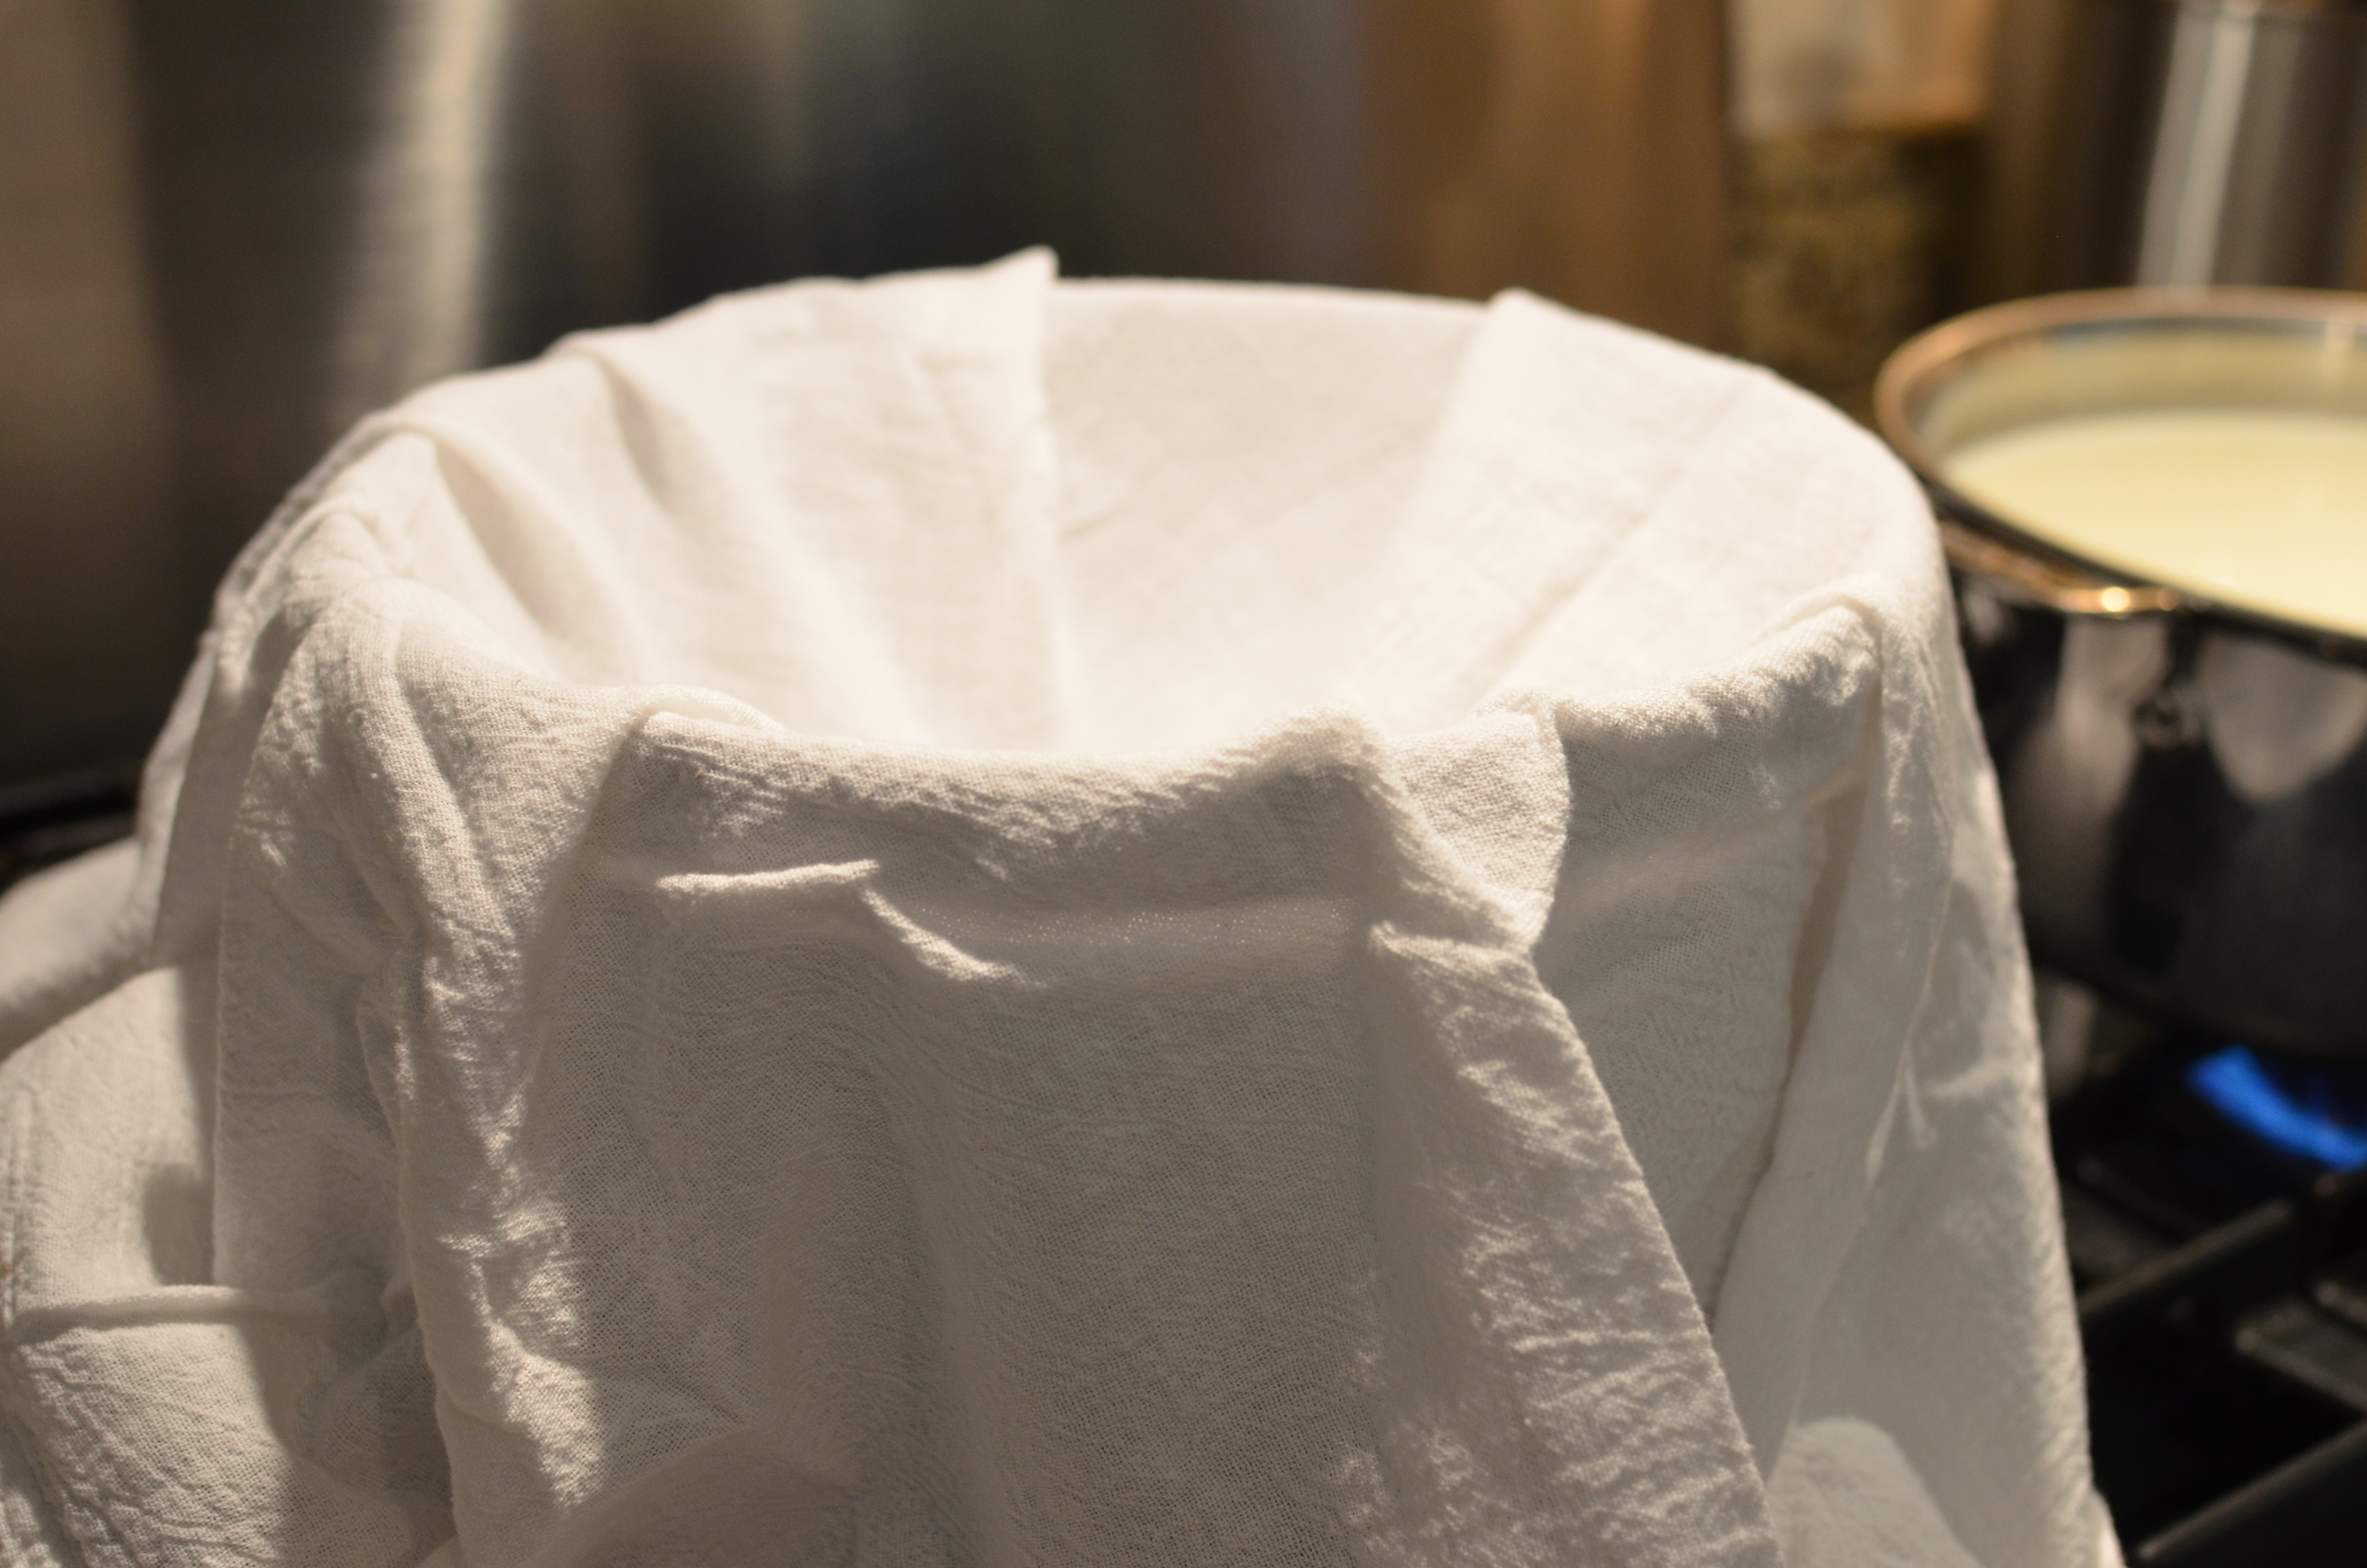 Line the sieve with a very clean tea towel. You could use a few layers of cheesecloth is you like, but a linen tea towel works perfectly well.